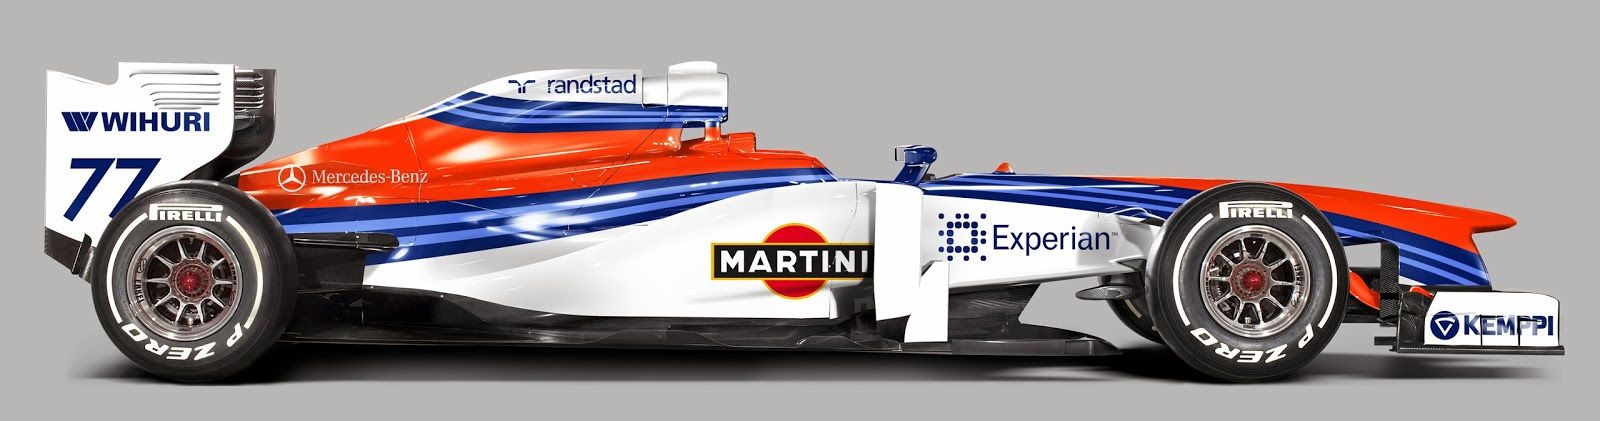 My Version Of The 2014 Williams Martini Livery